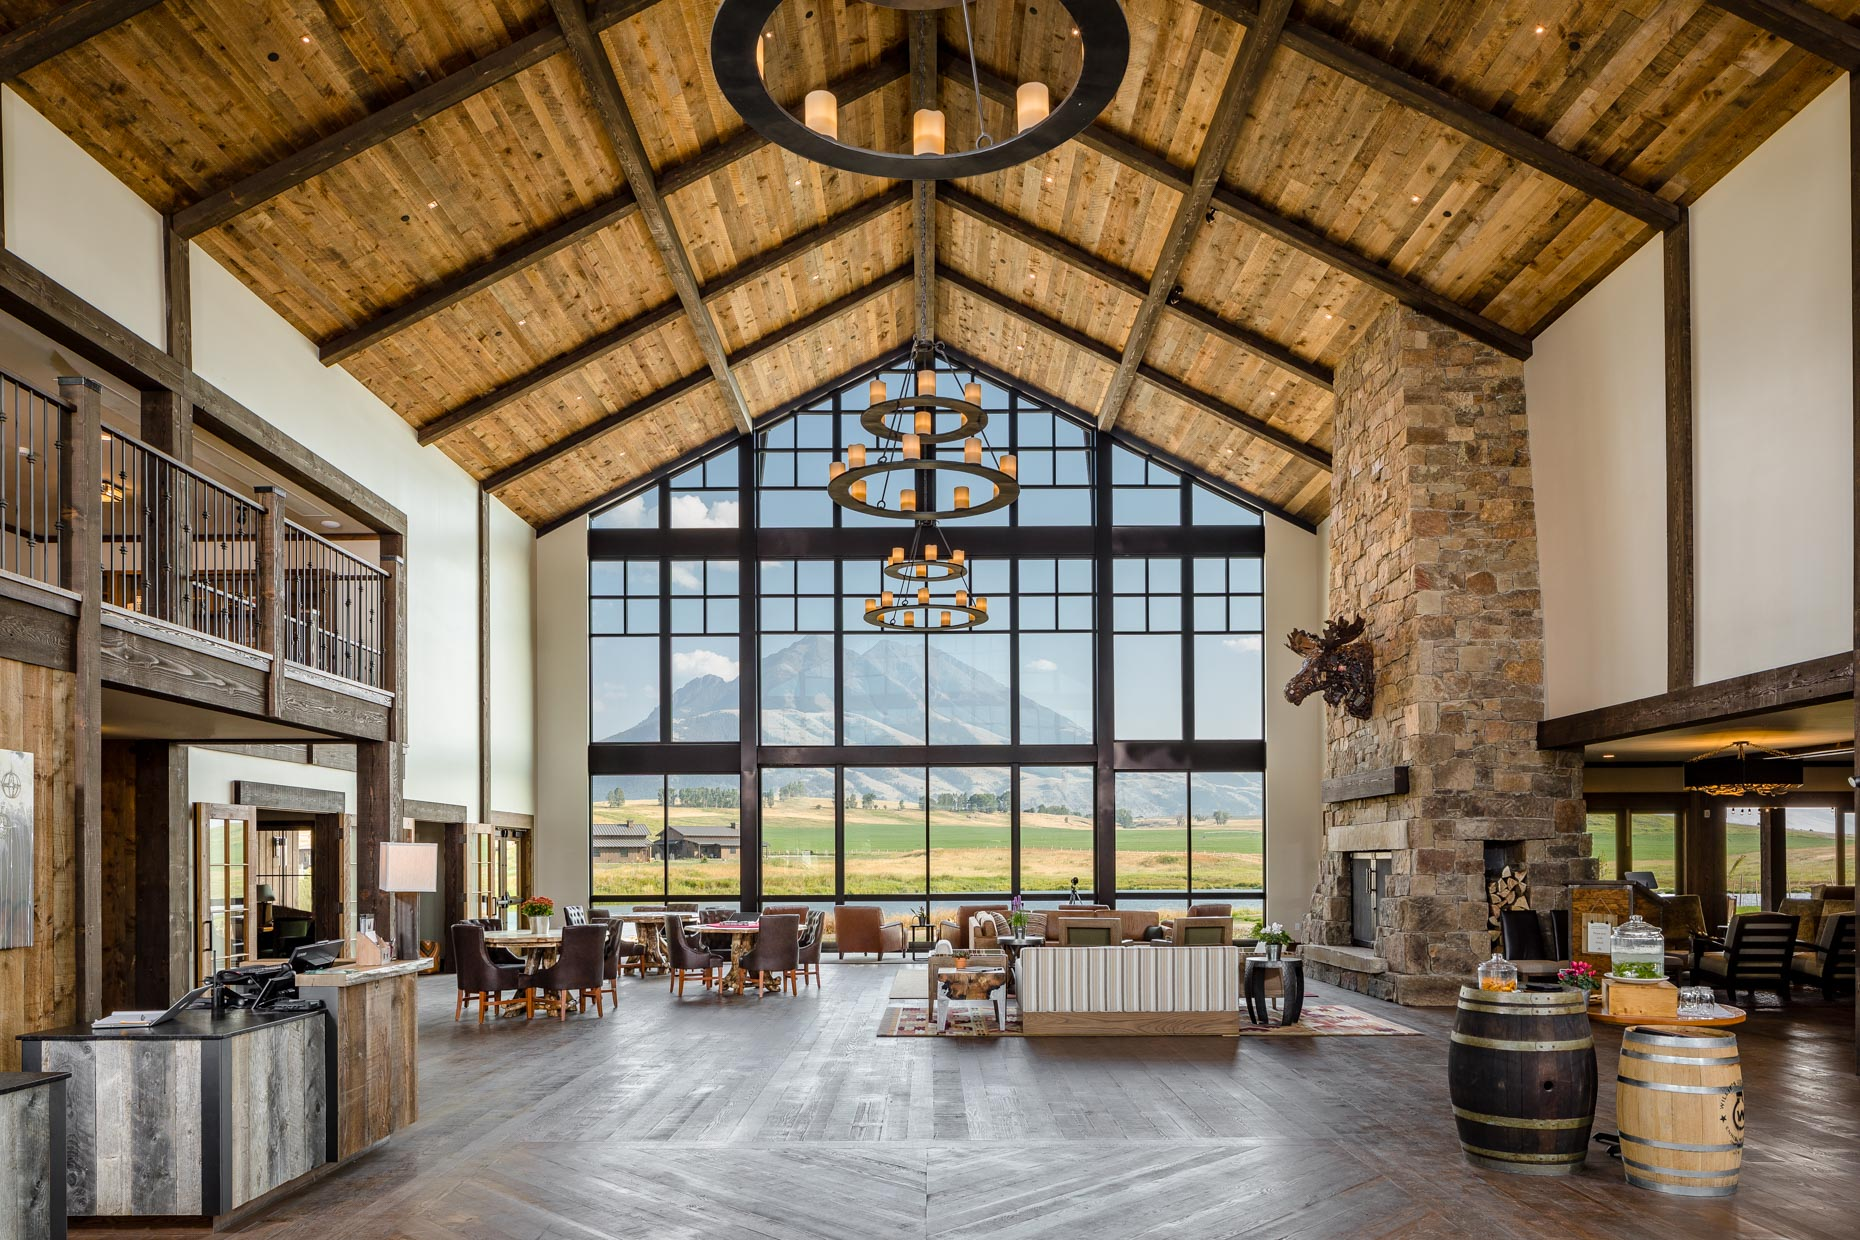 architecture sage lodge Montana great room